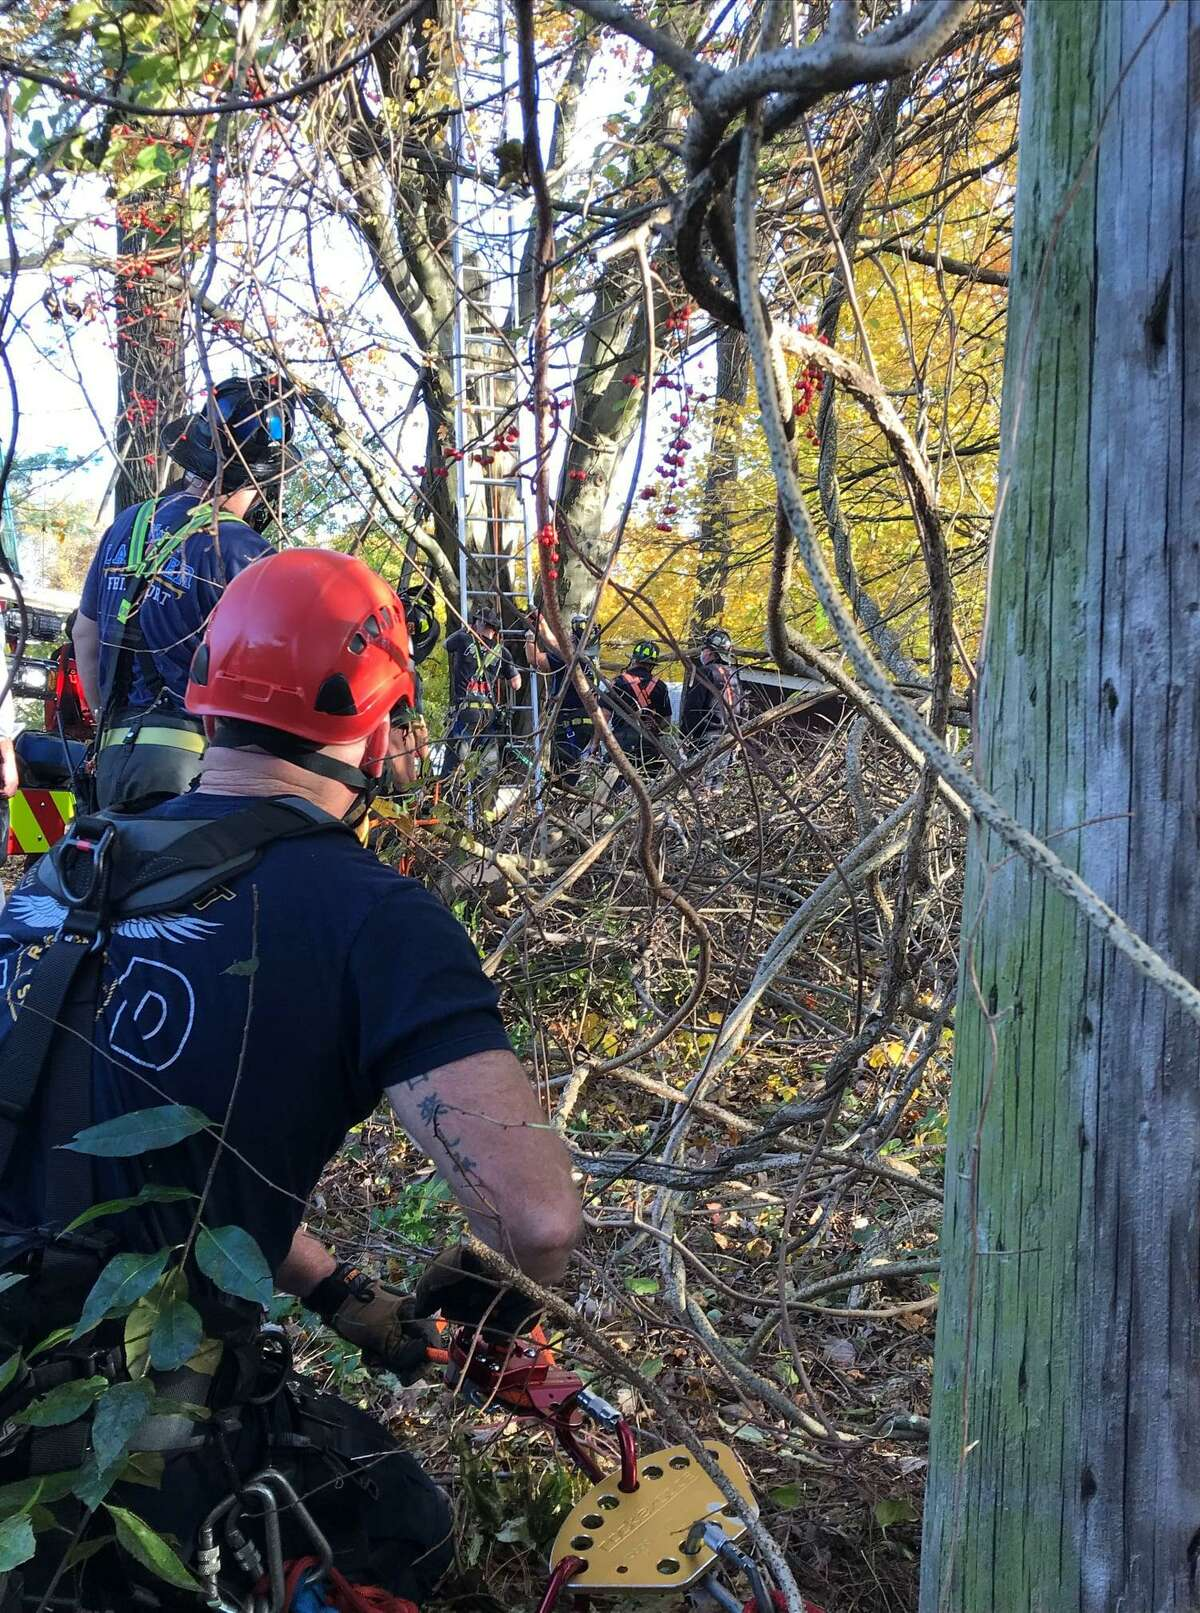 Bridgeport and Fairfield firefighters use rescue rope and rigging to lift heavy branch off the leg of a worker pinned in a tree high above Beacon View Drive Saturday, Nov. 7.